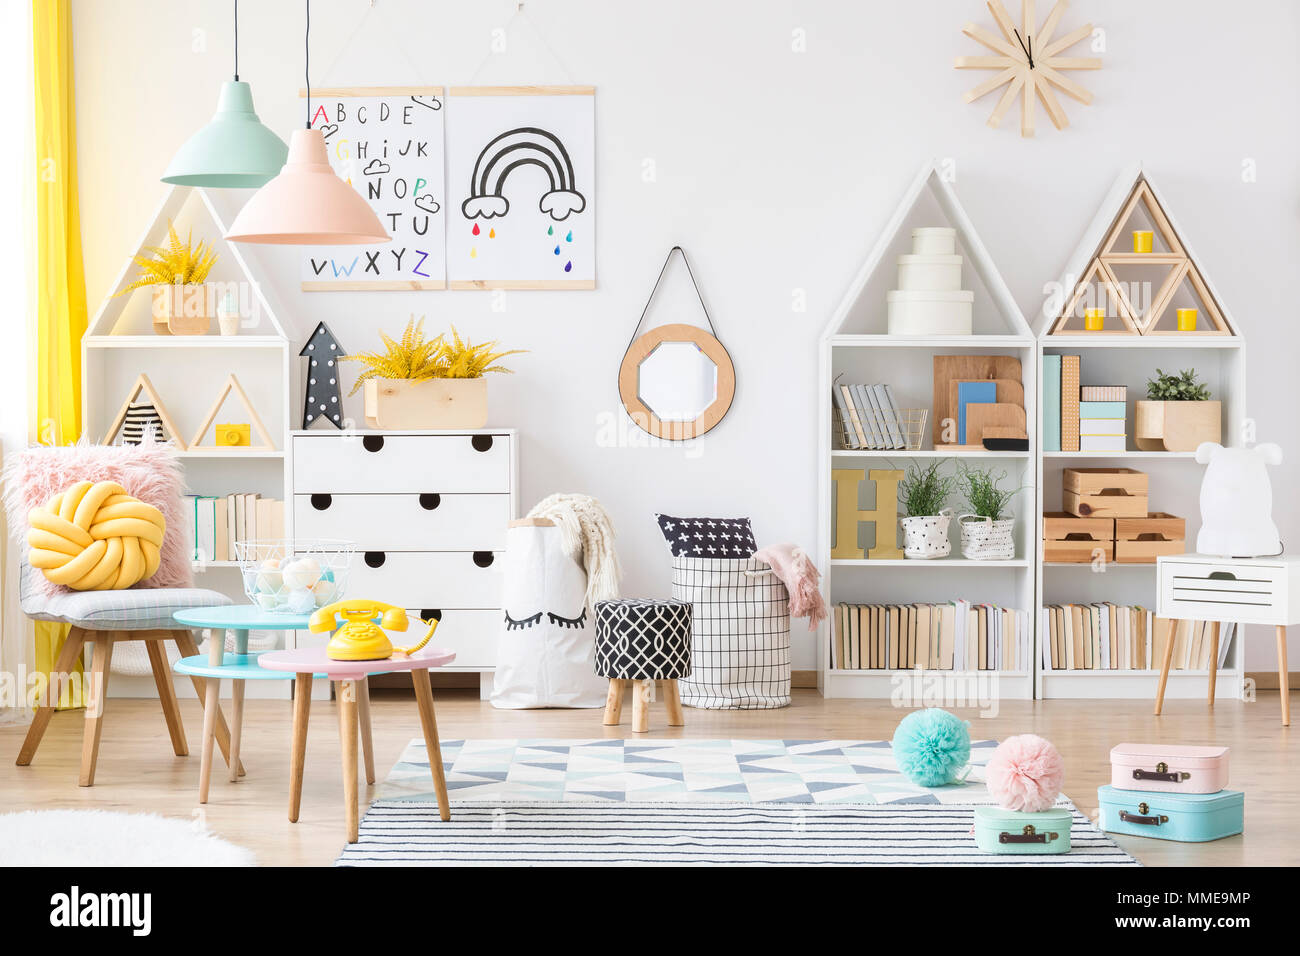 https www alamy com two simple posters hanging on white wall in kids room interior with material baskets wooden furniture and pastel lamps image184711766 html